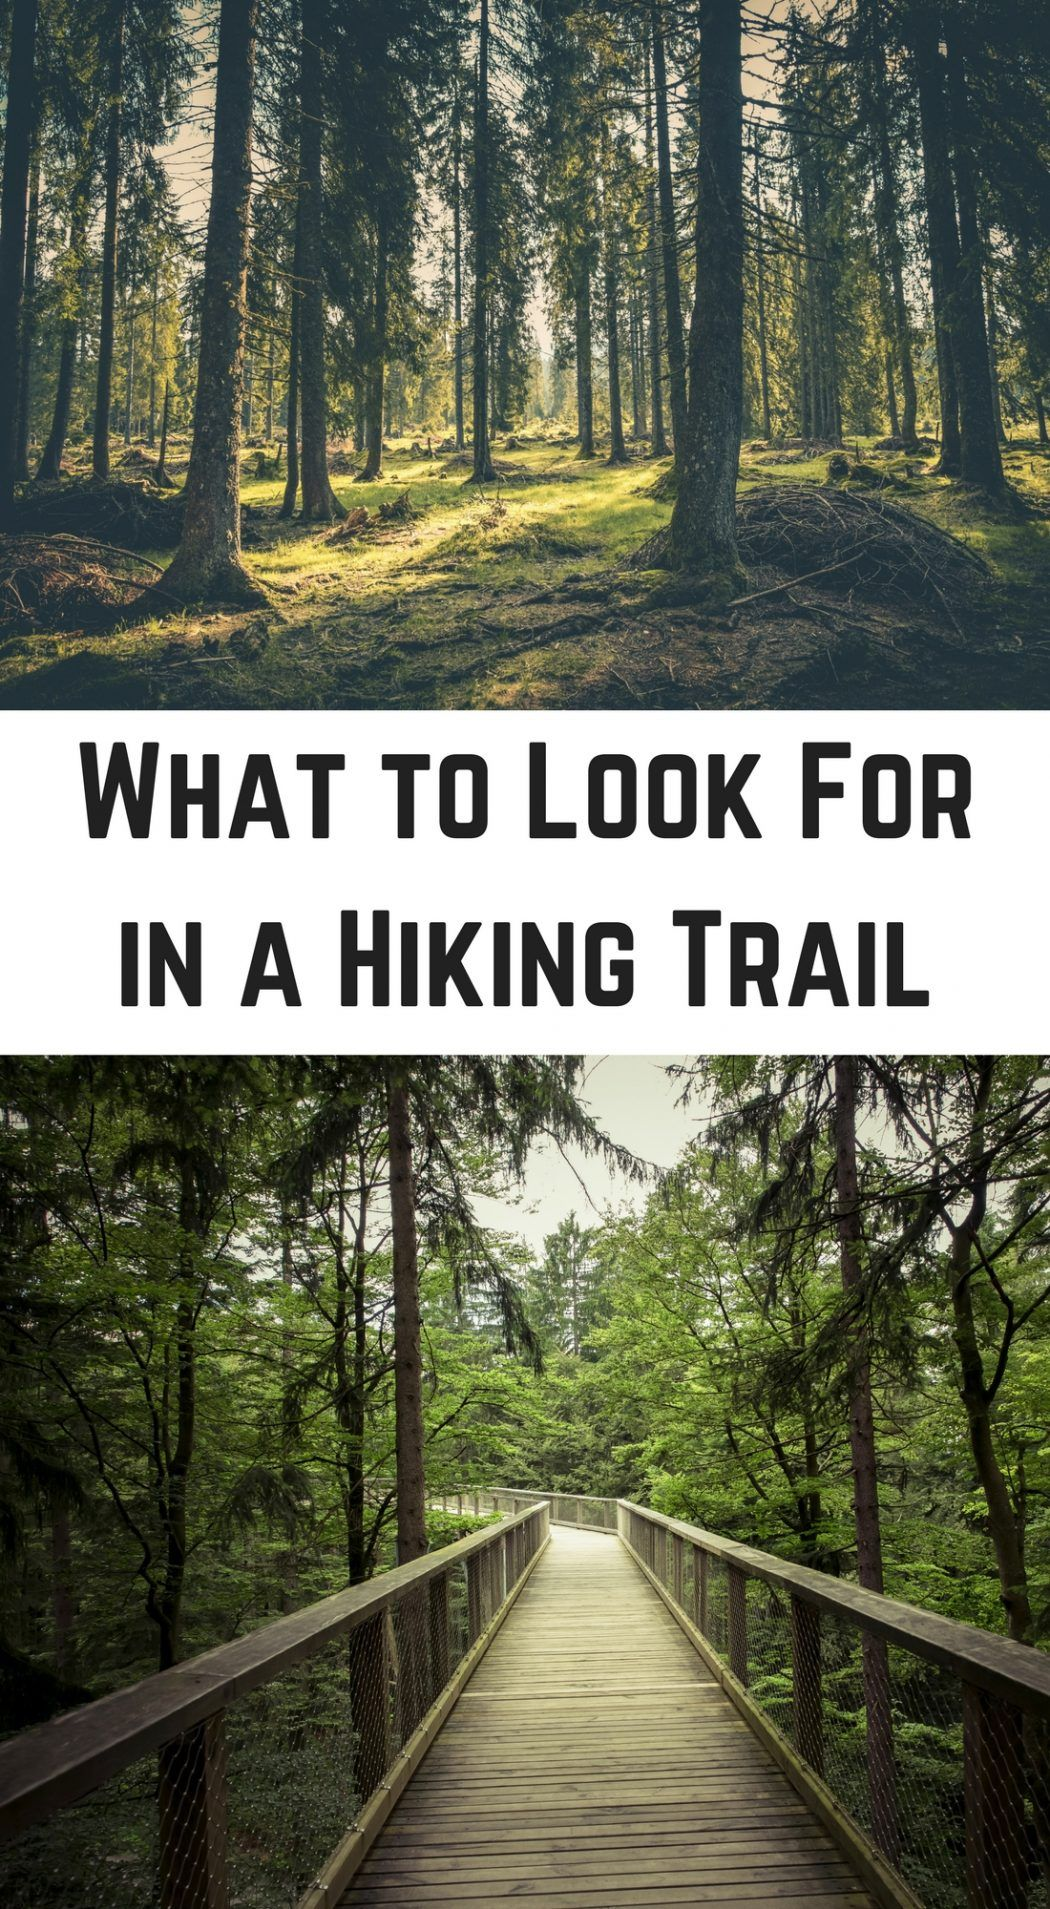 What to Look For in a Hiking Trail | Camping | Hiking guide